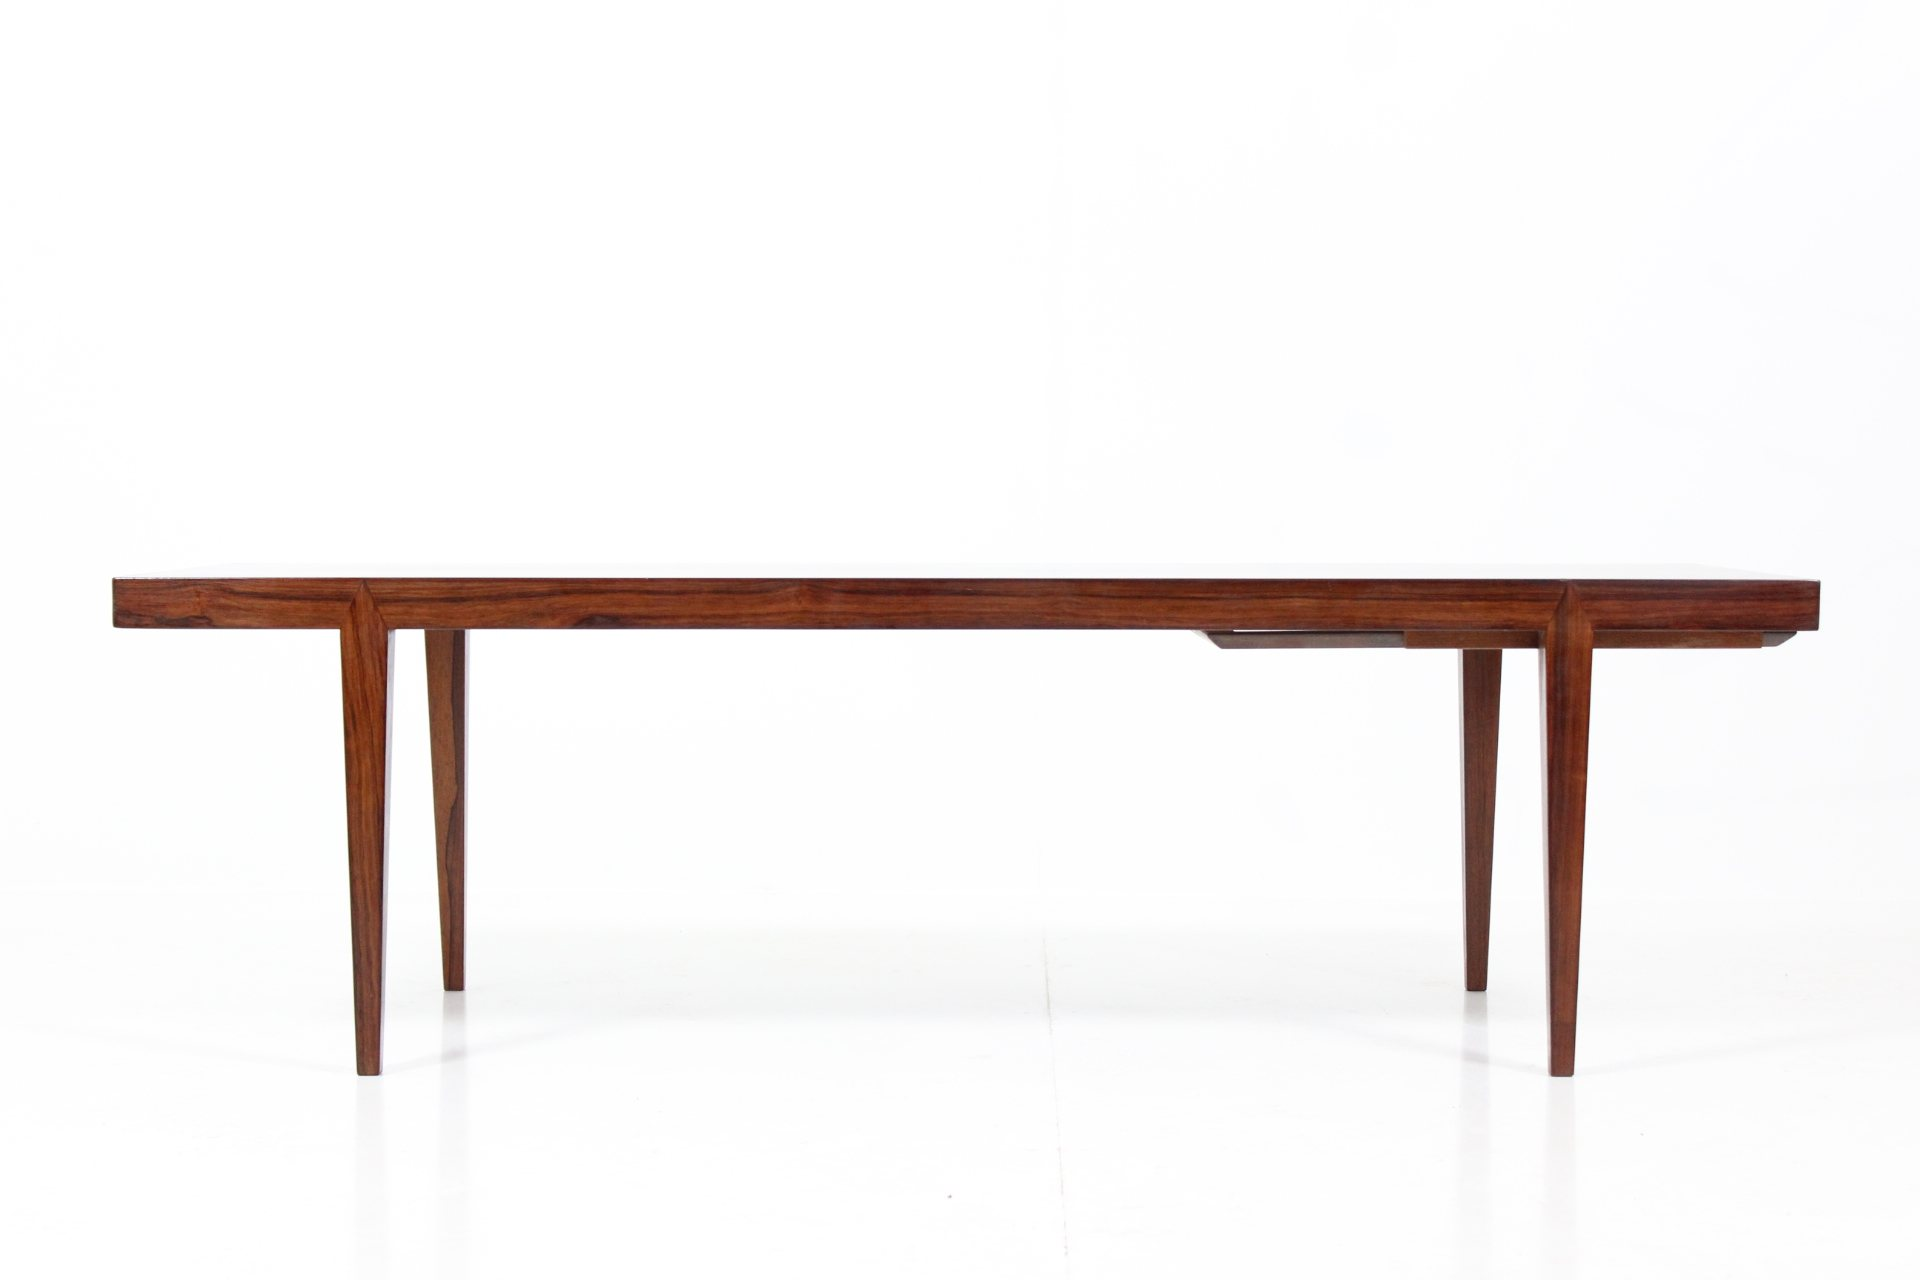 Vintage Coffee Table no. 44 by Severin Hansen for Haslev Møbelsnedkeri